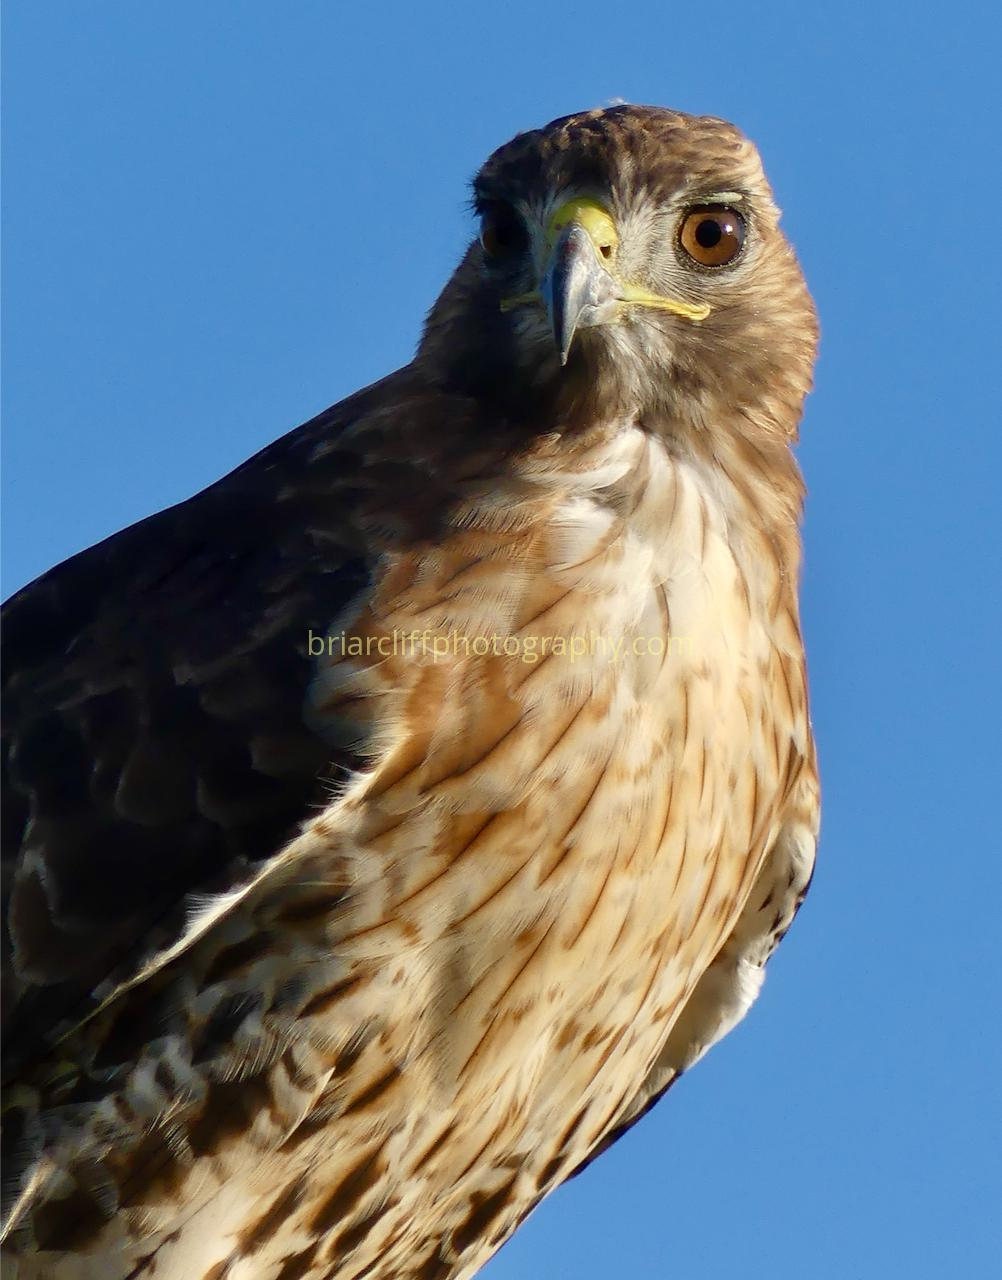 Red-tailed hawk front view